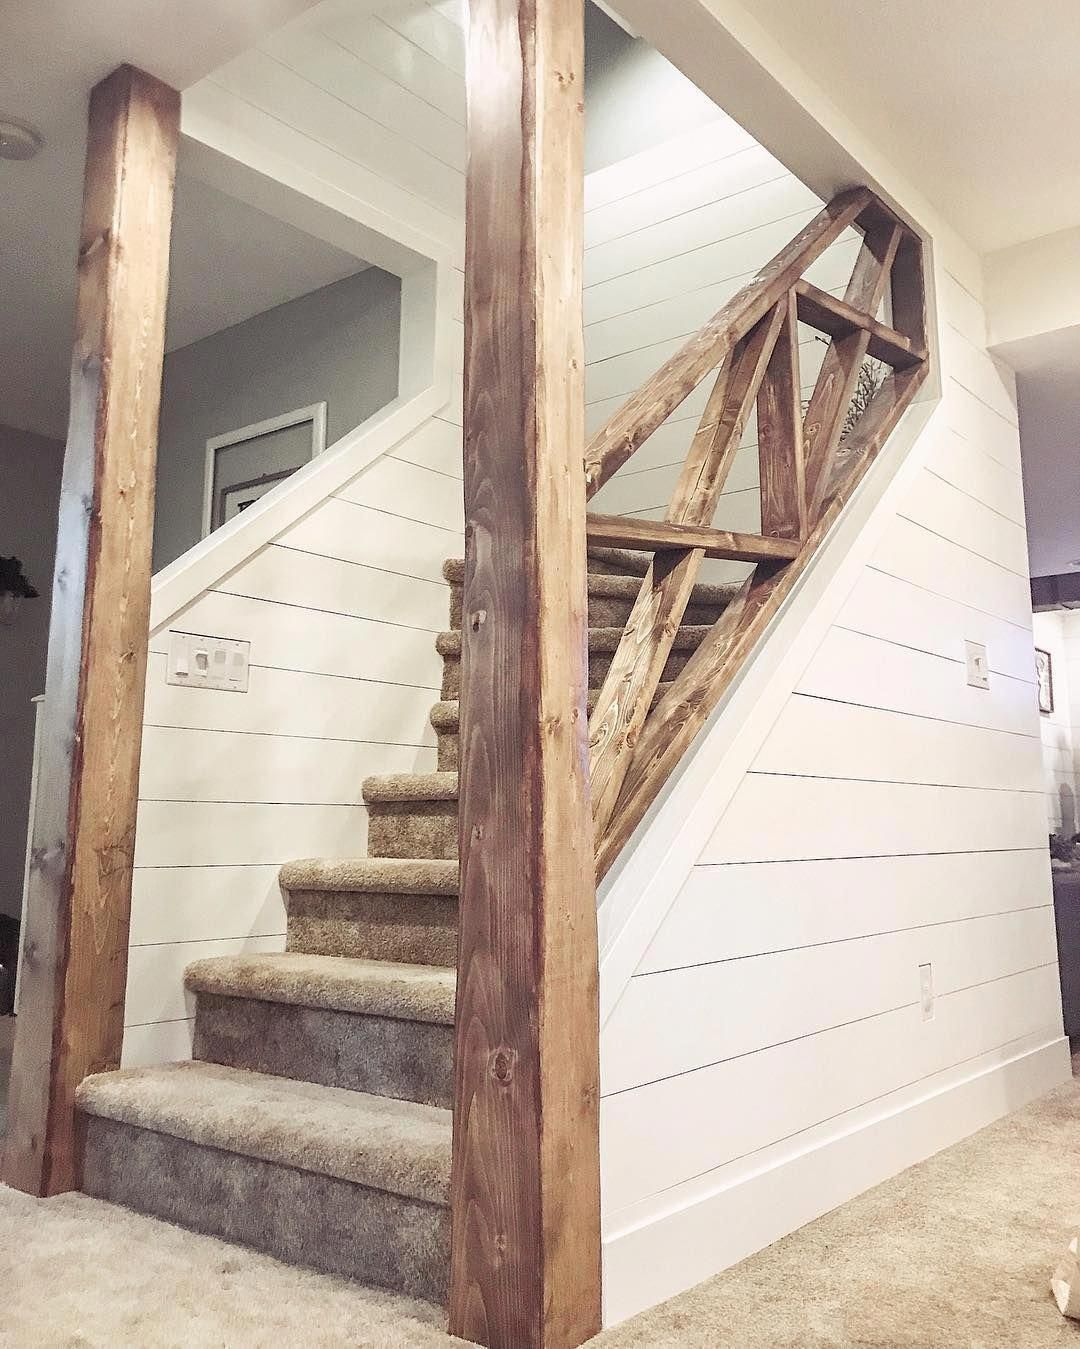 "???????????????? ???????????????????? on Instagram: ""Good morning!! It's been so rewarding watching our basement staircase change from all of our hard work and DIY-ing. I thought it would be…"" #remodelbasement #staircaseideas"